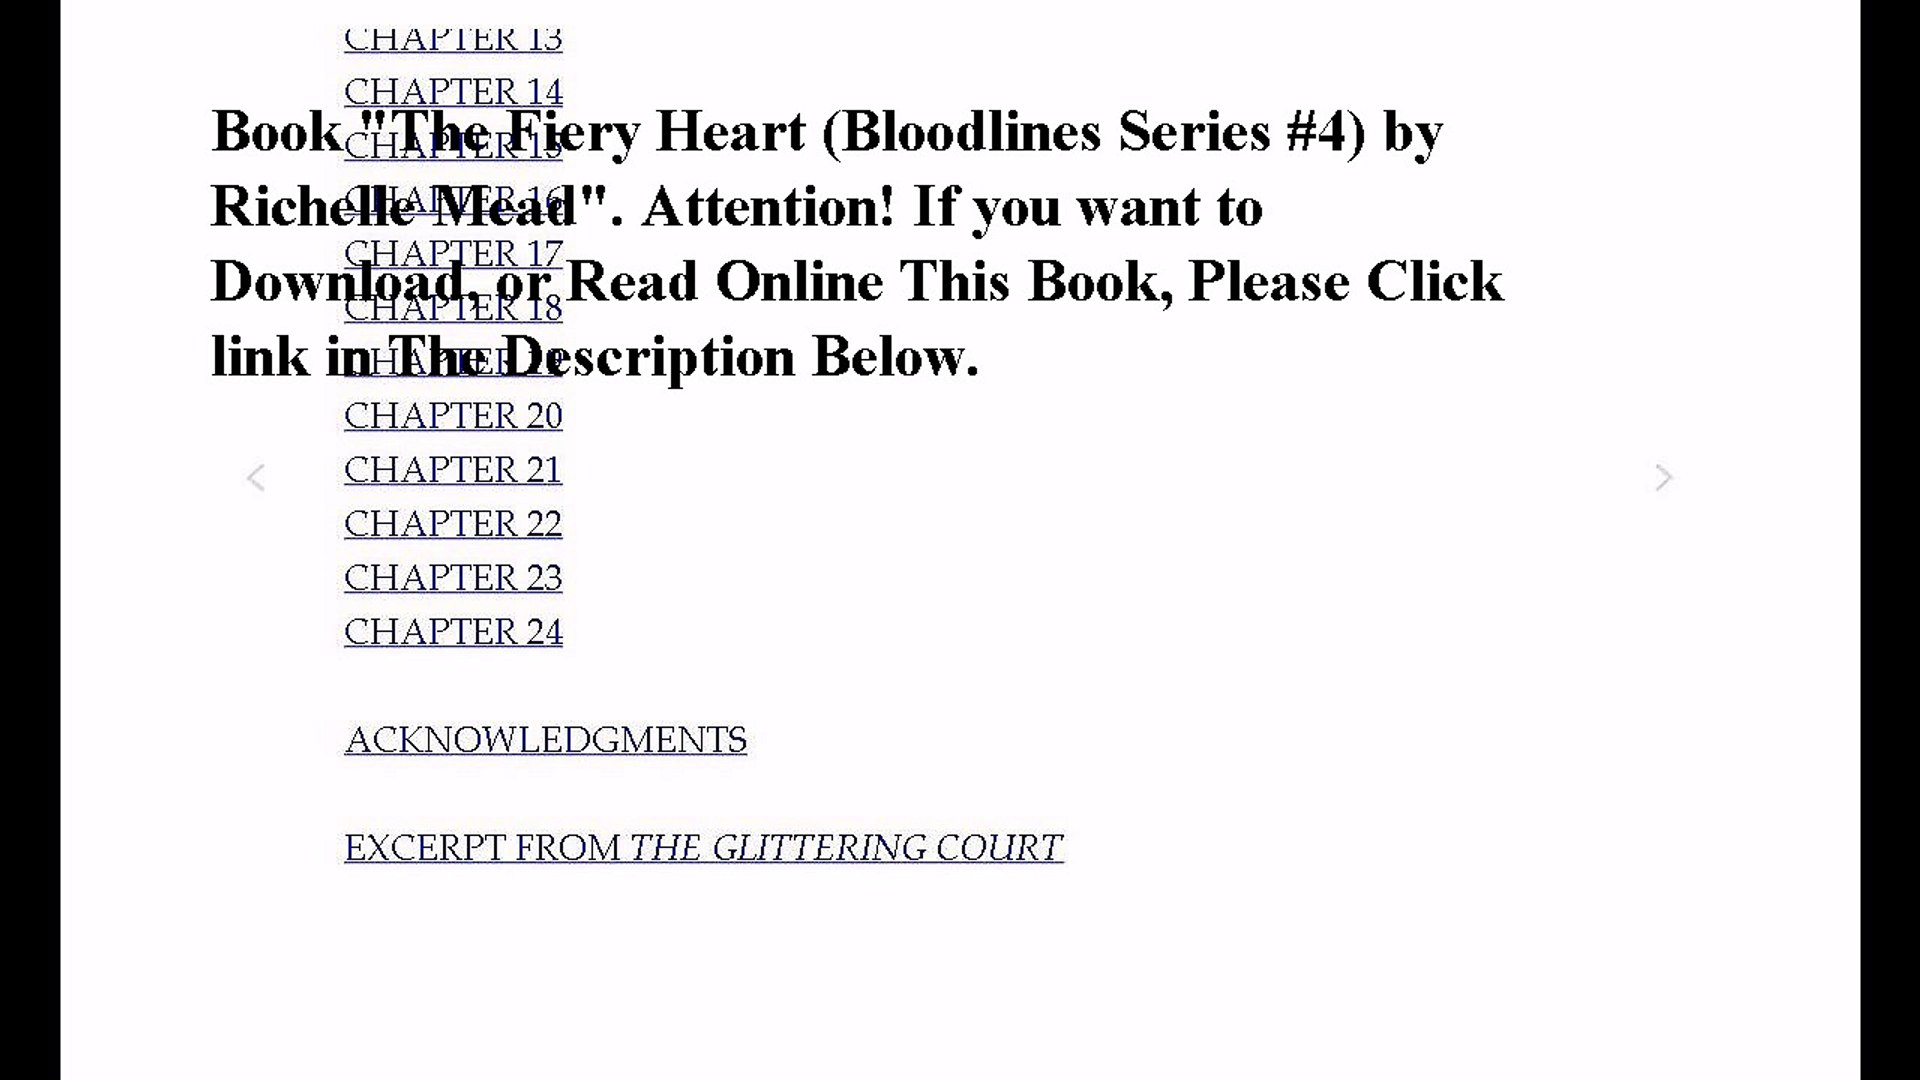 Download The Fiery Heart (Bloodlines Series #4) ebook PDF